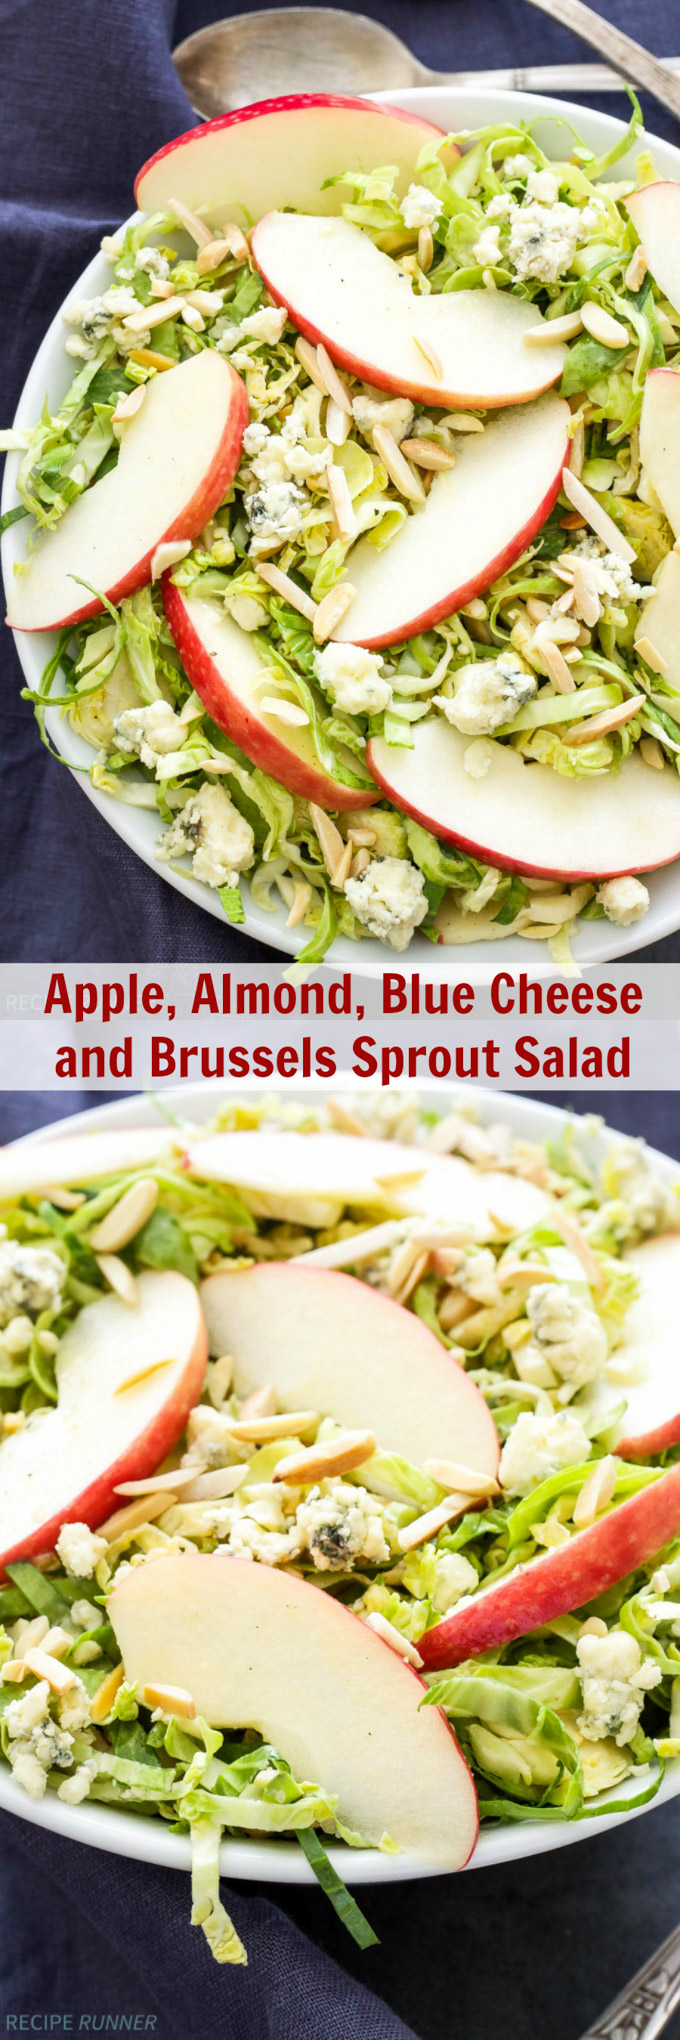 Apple, Almond and Blue Cheese Brussels Sprout Salad |This Apple, Almond and Blue Cheese Brussels Sprouts Salad is savory, sweet and full of crunch! The perfect side dish to serve with dinner!